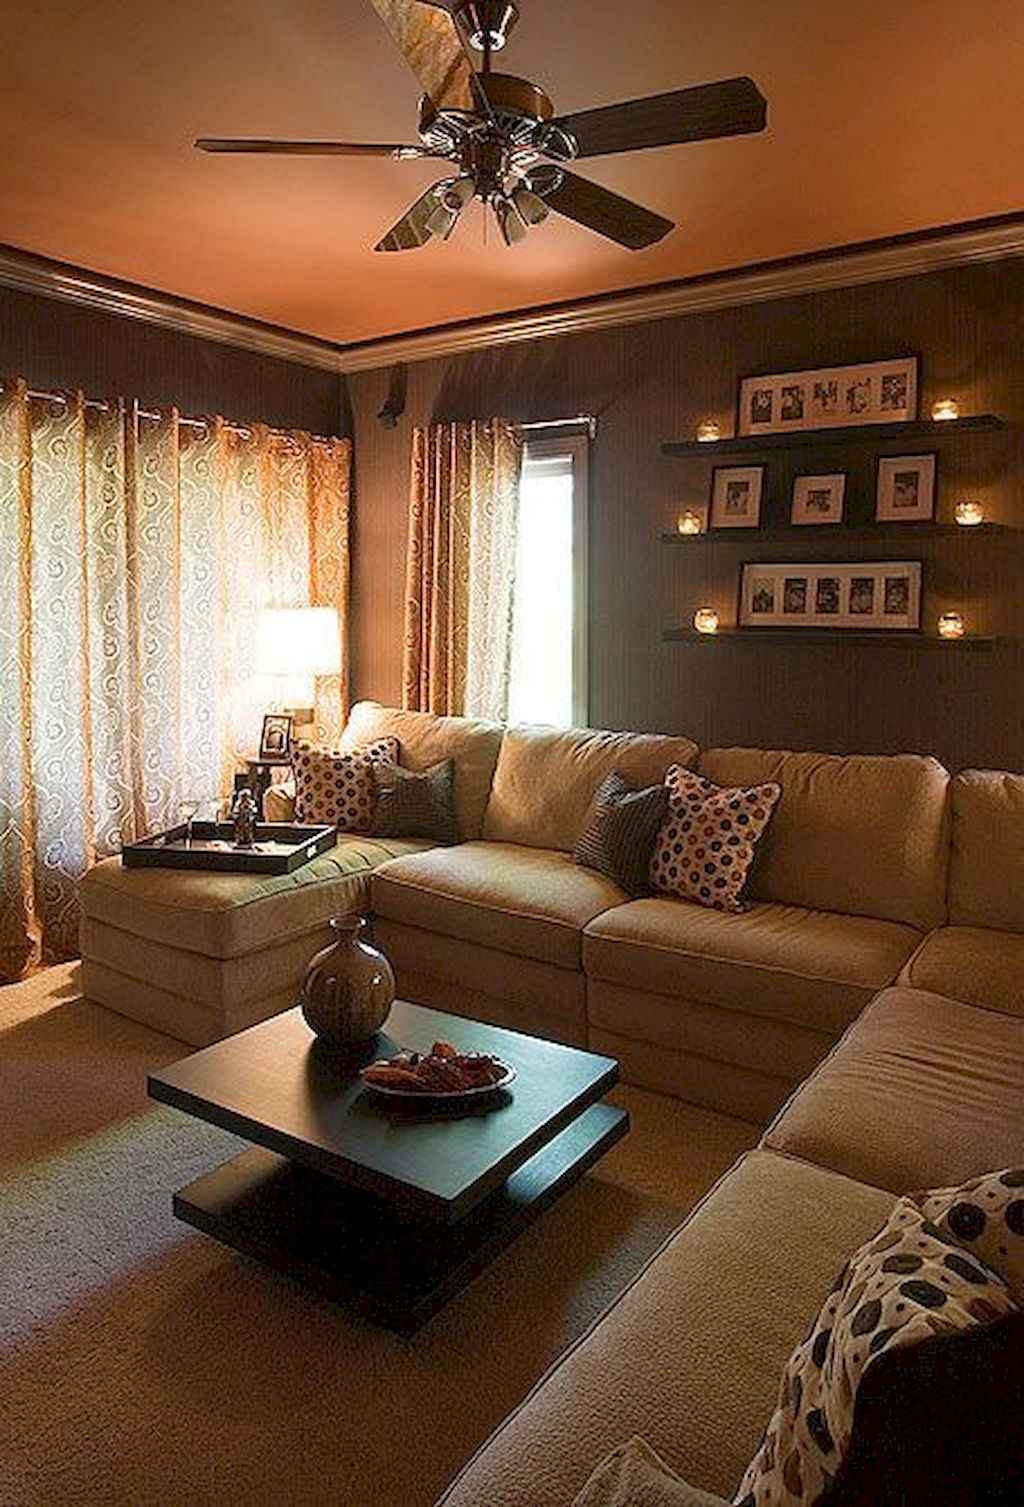 Cozy apartment decorating ideas on a budget (54)